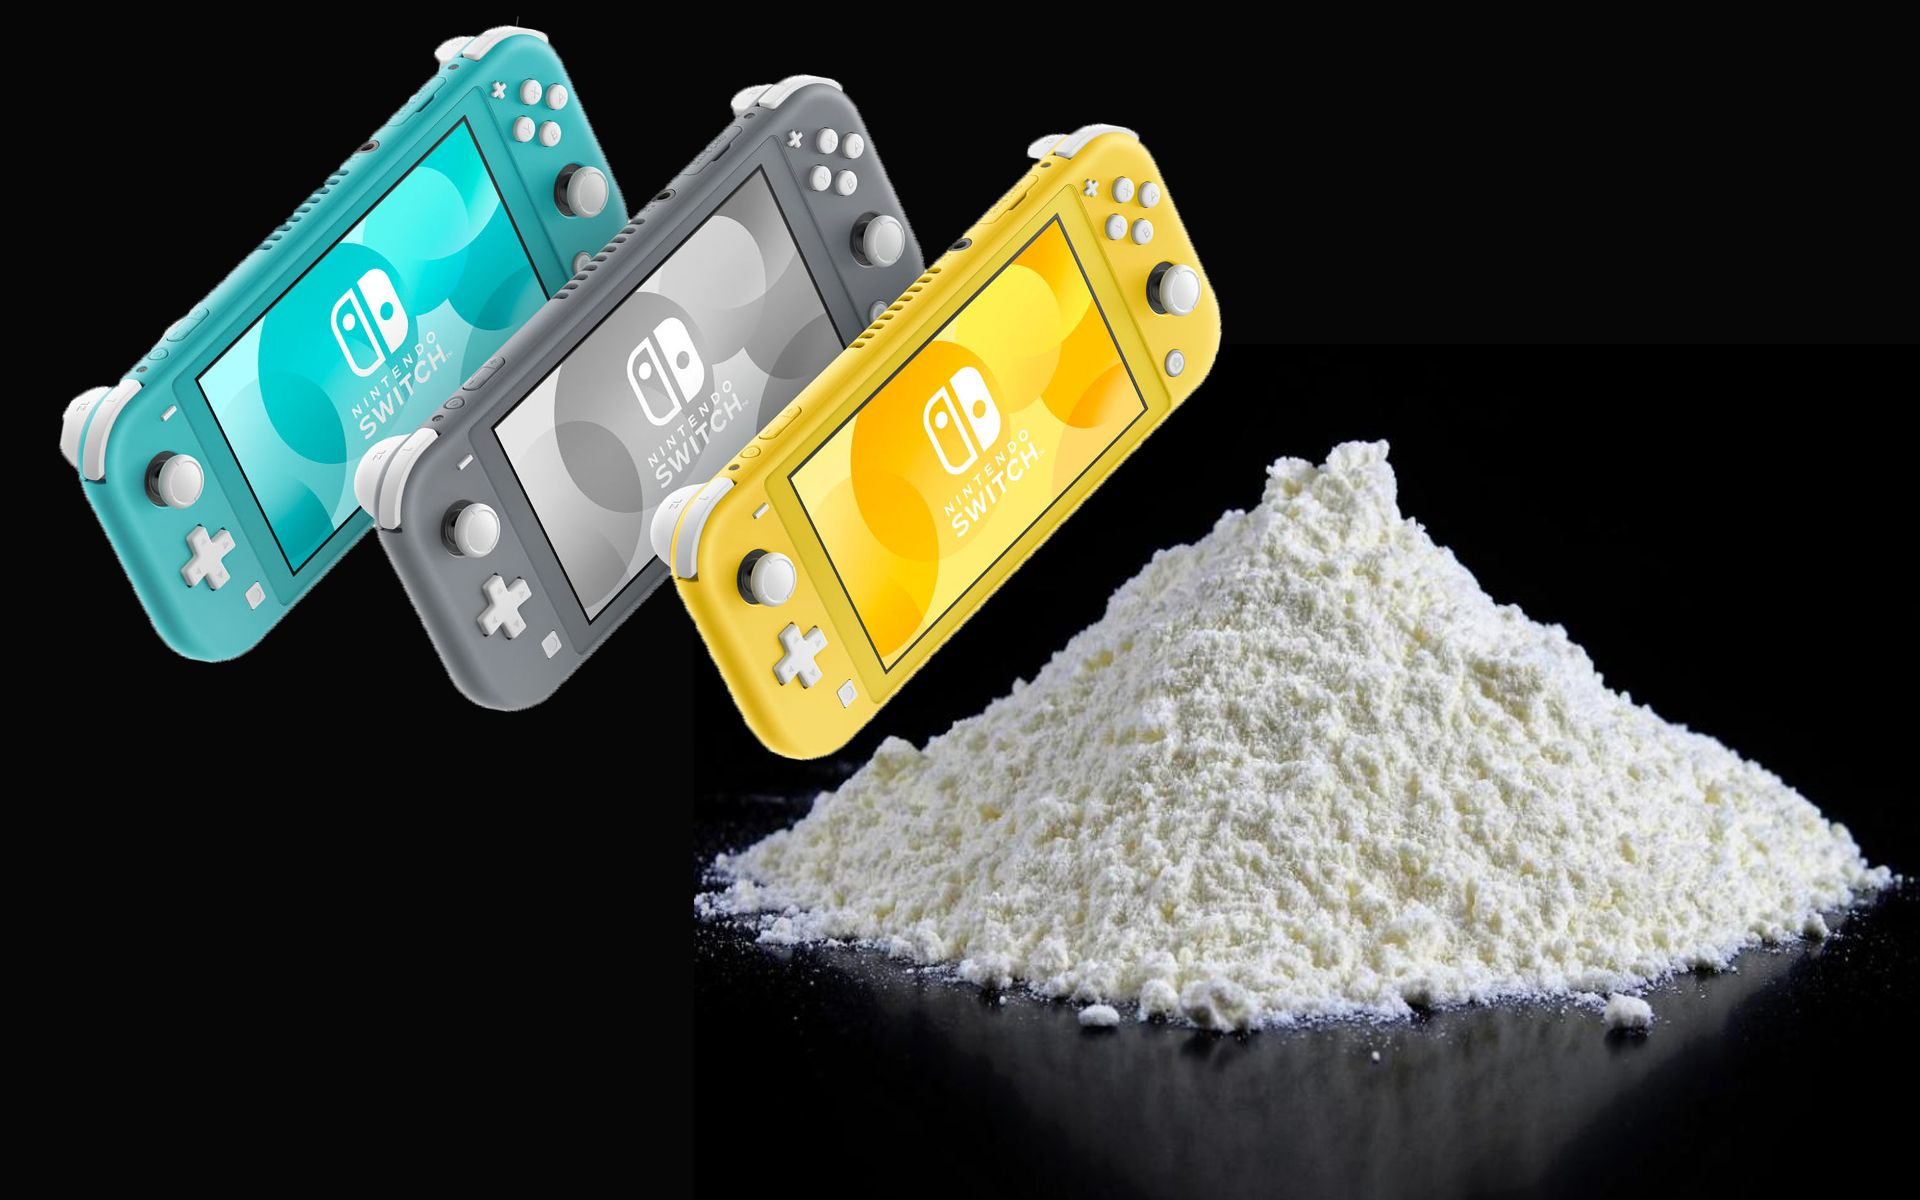 All Nintendo Switch Lites Come Packaged With Sixty Pounds Of Cocaine